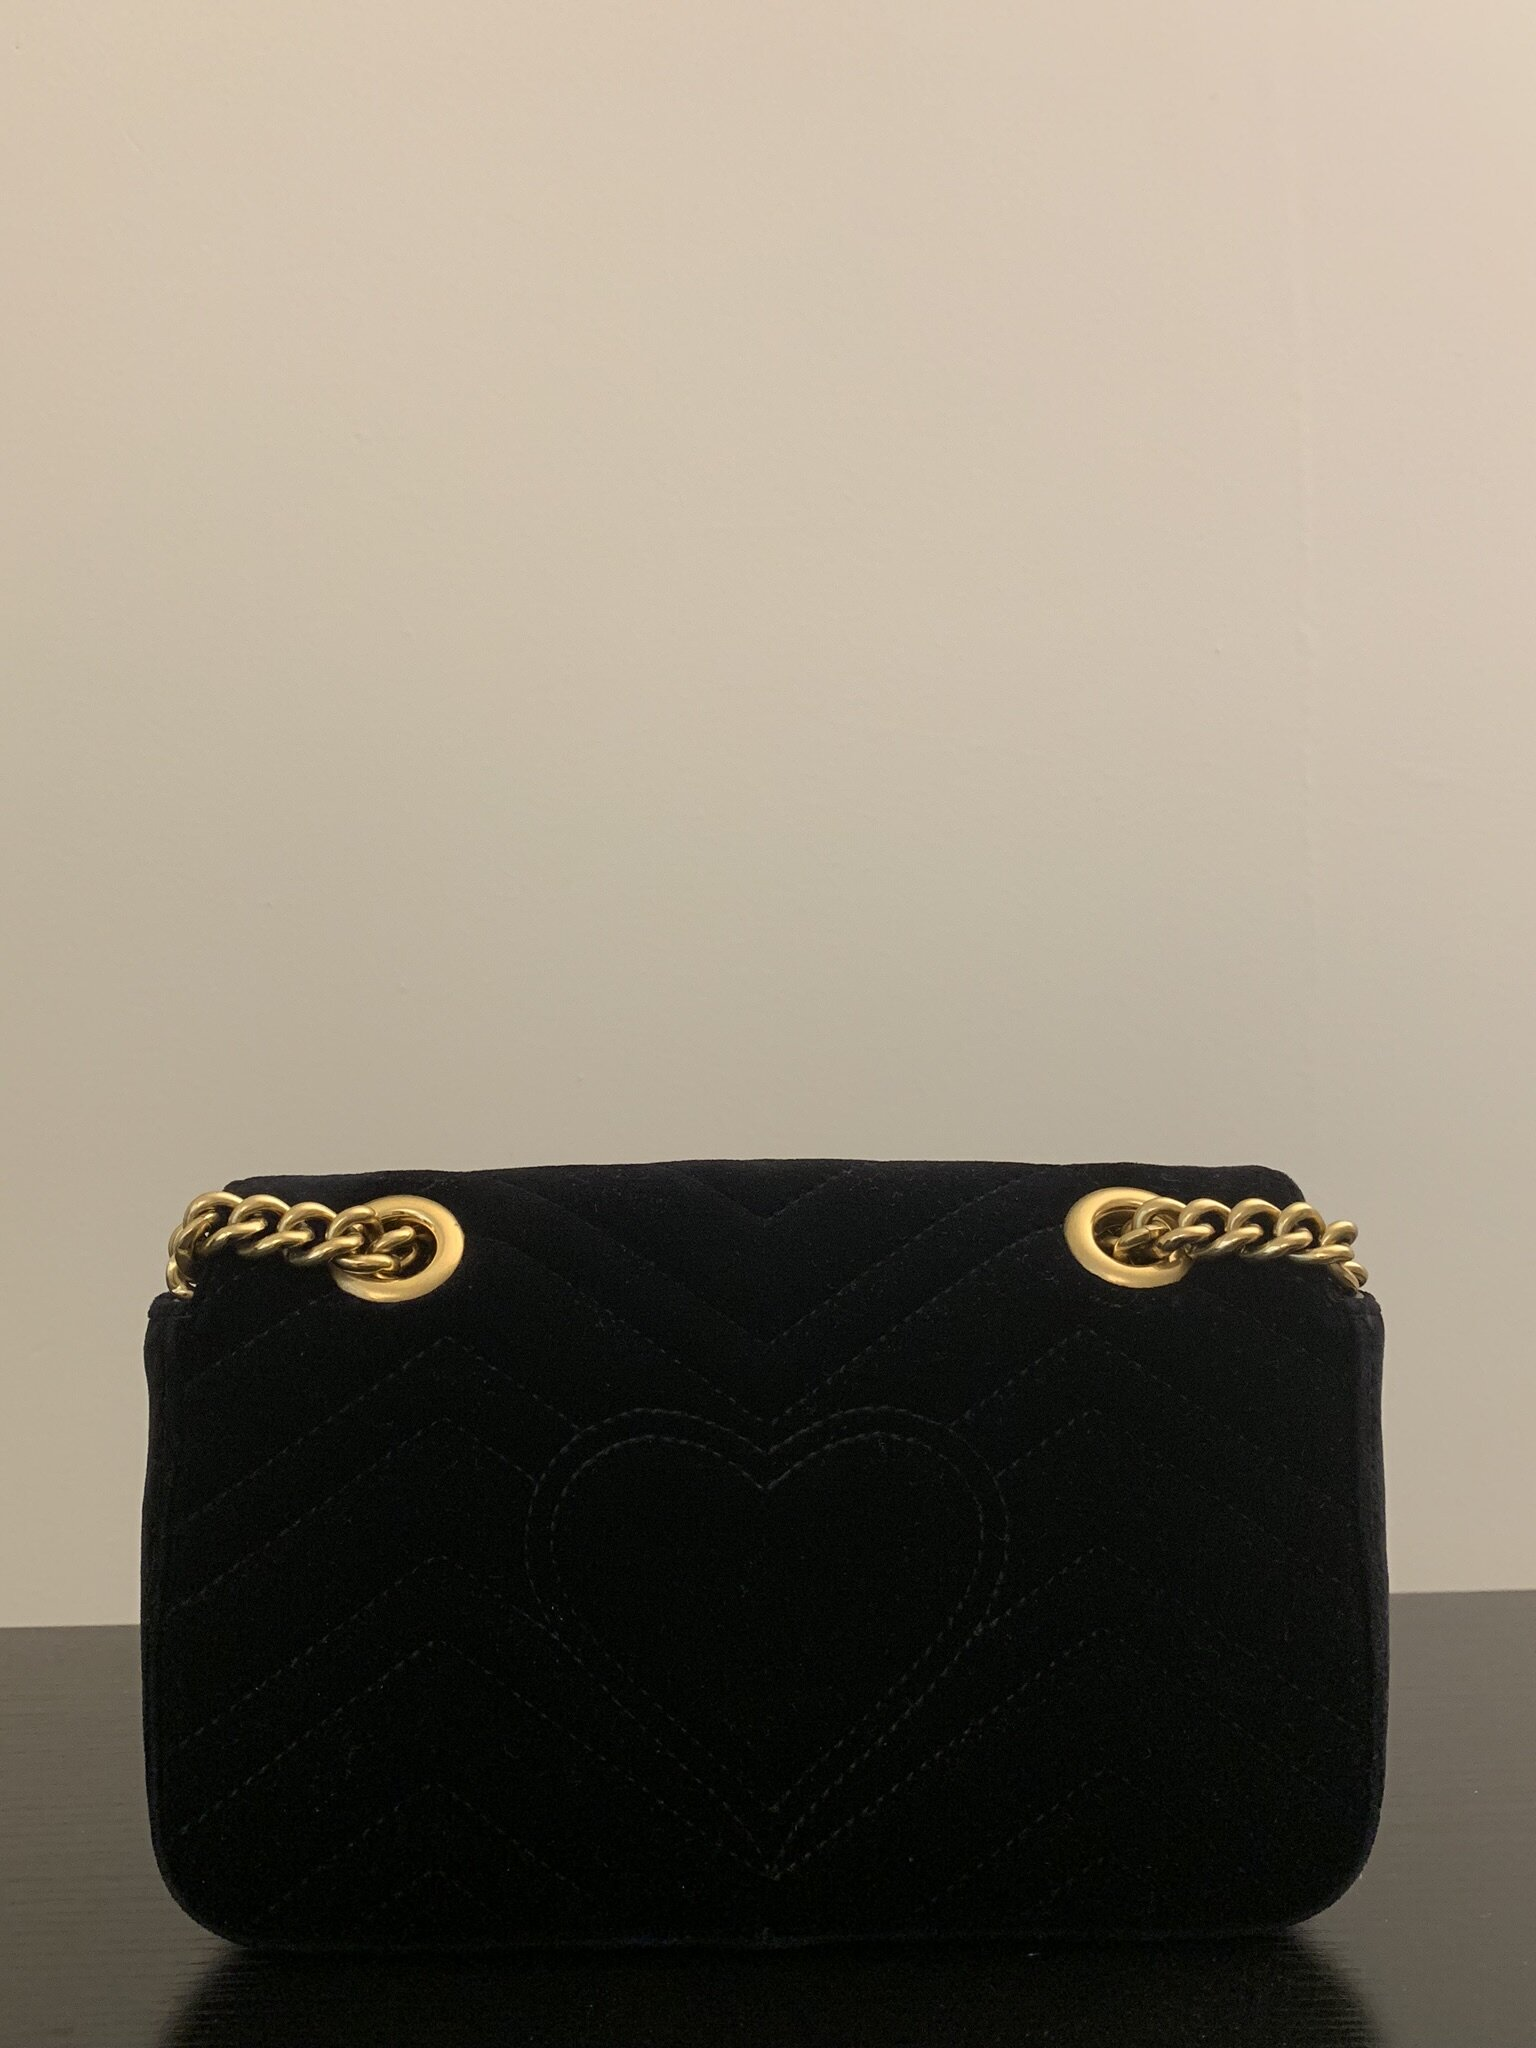 On the back of the purse, there is an adorable heart shape.